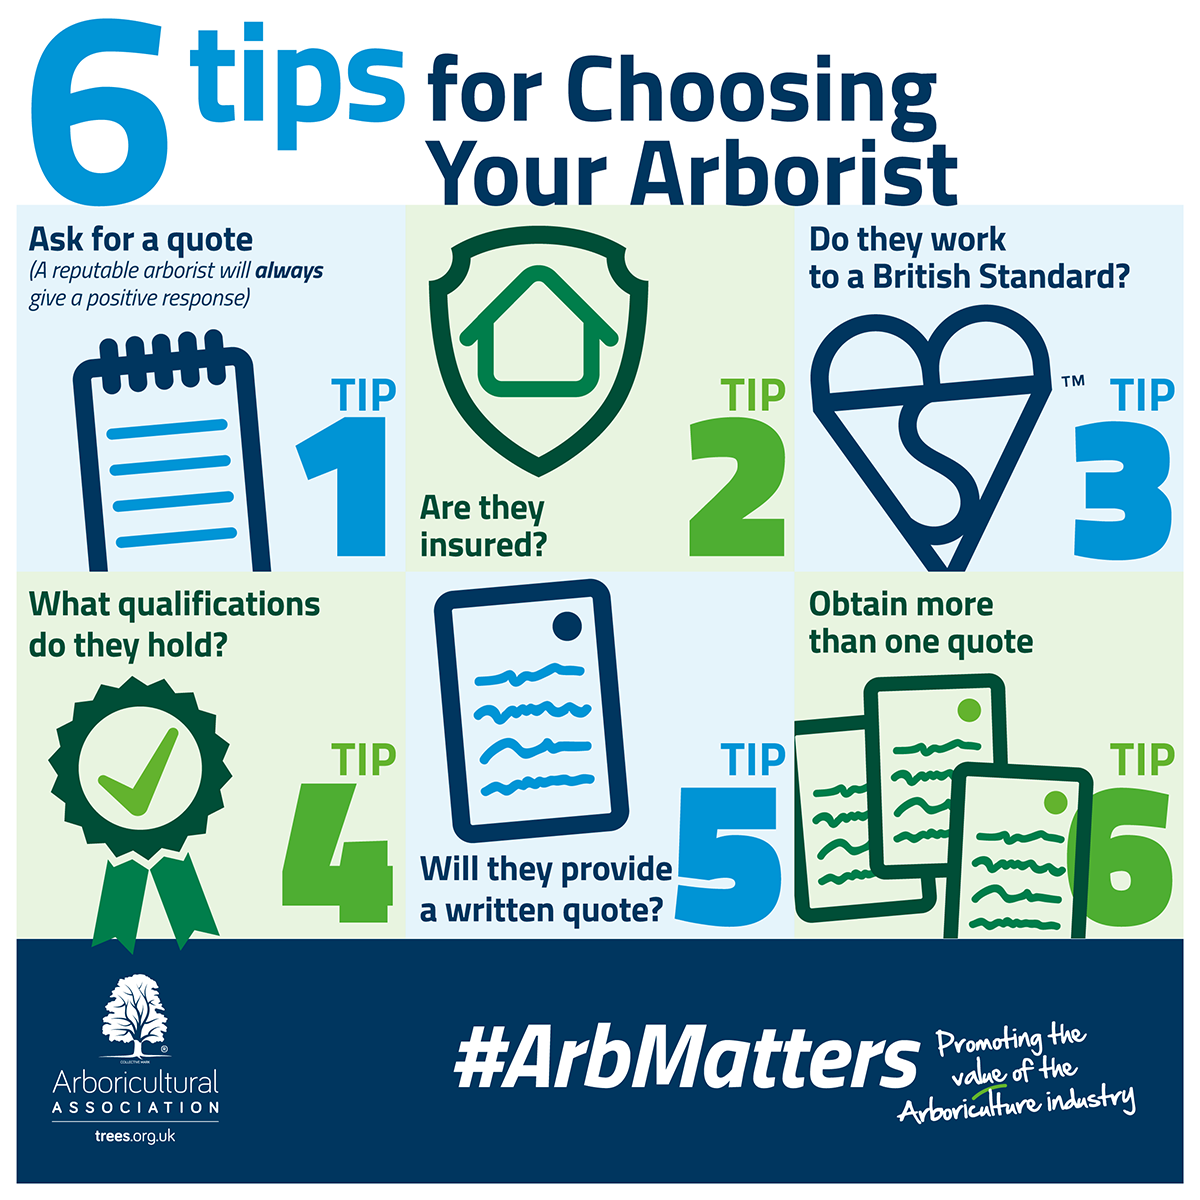 6 tips for Choosing Your Arborist